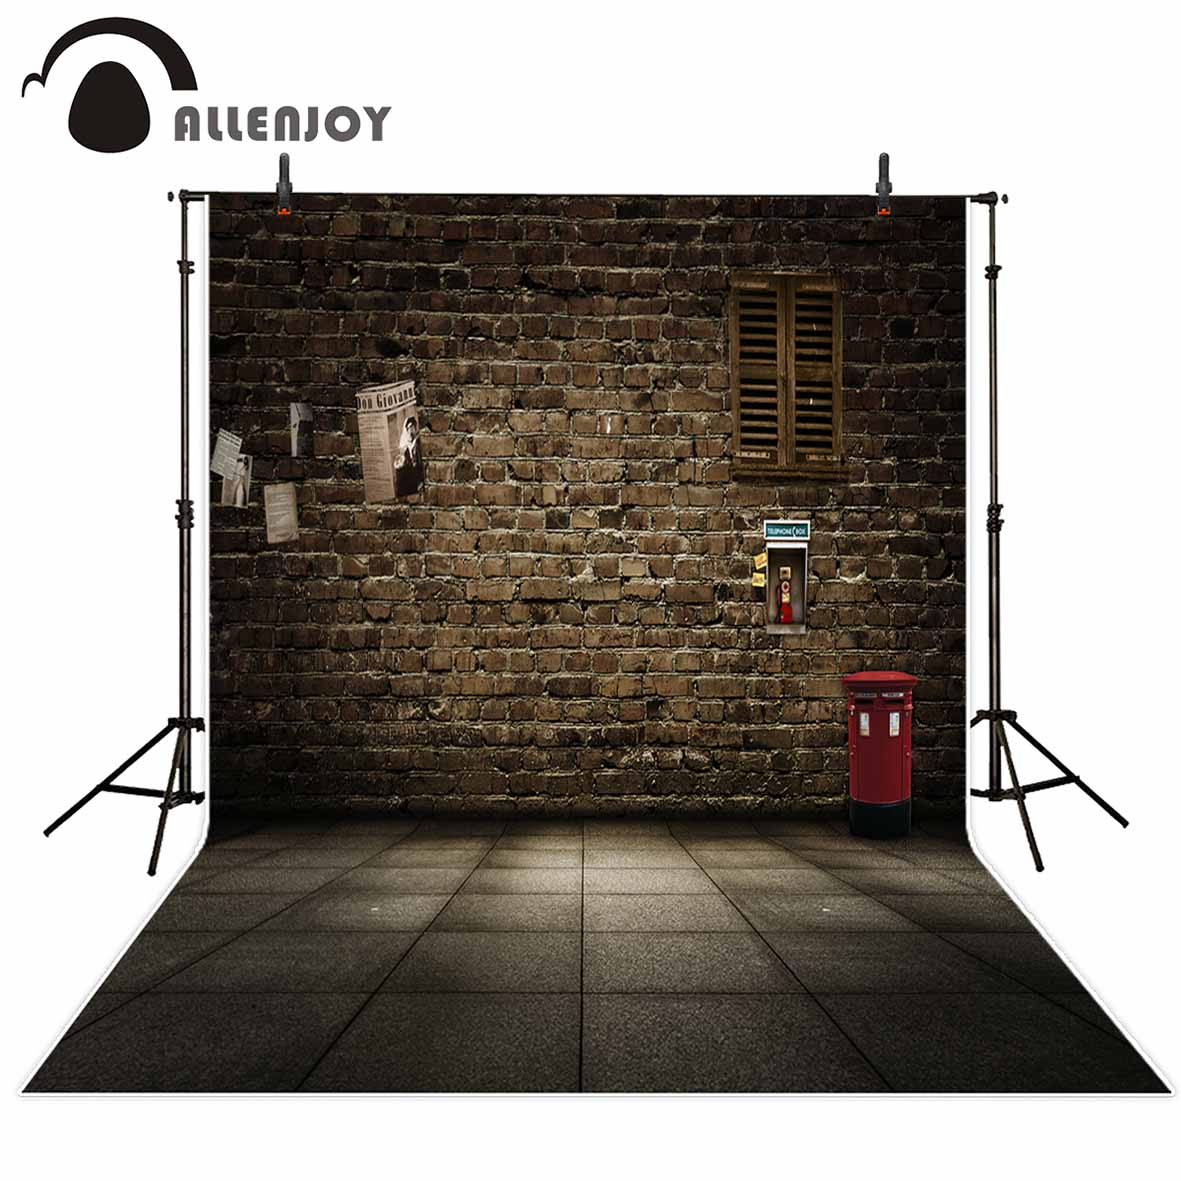 Allenjoy Brown brick wall vintage wooden window mailbox poster kids backgrounds for photo studio photo booth backdrop allenjoy photography backdrops neat wooden structure wooden wall wood brick wall backgrounds for photo studio